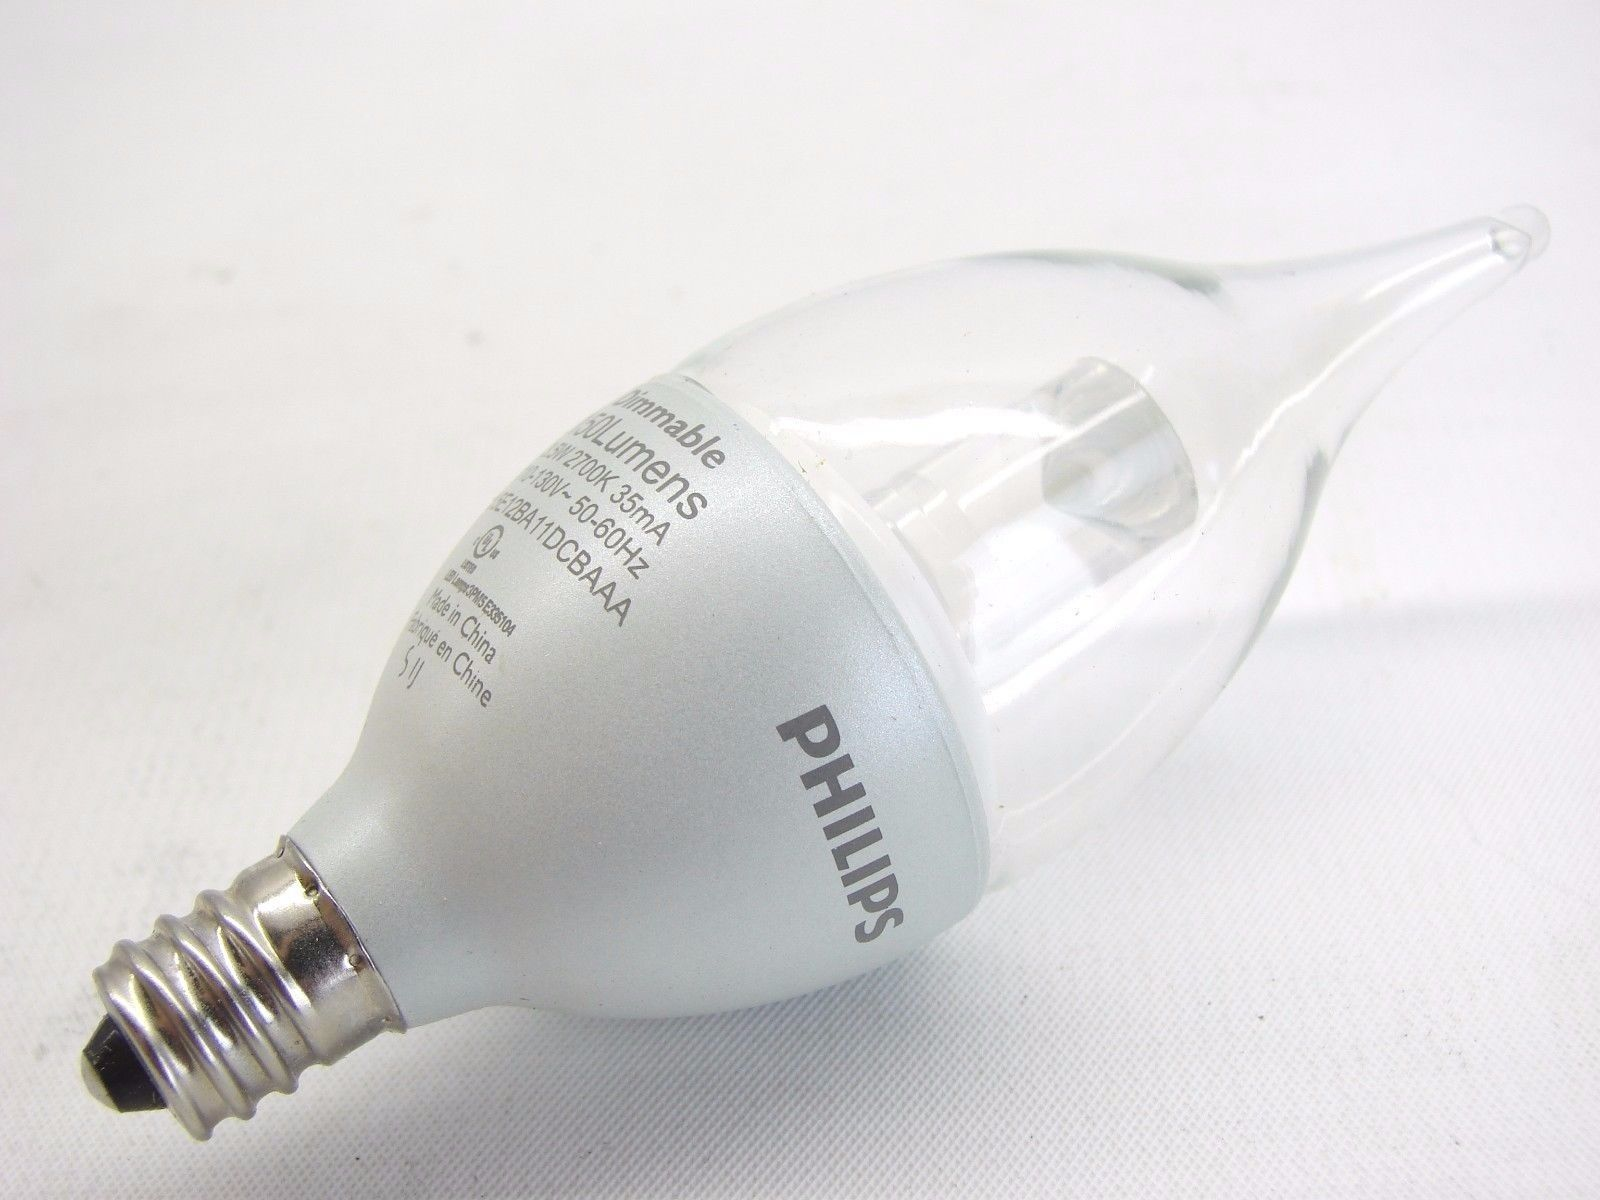 PHILIPS EnduraLED 3.5W 120V 3.5EI2BA11 Dimmable Clear Candelabra Light Bulb t14